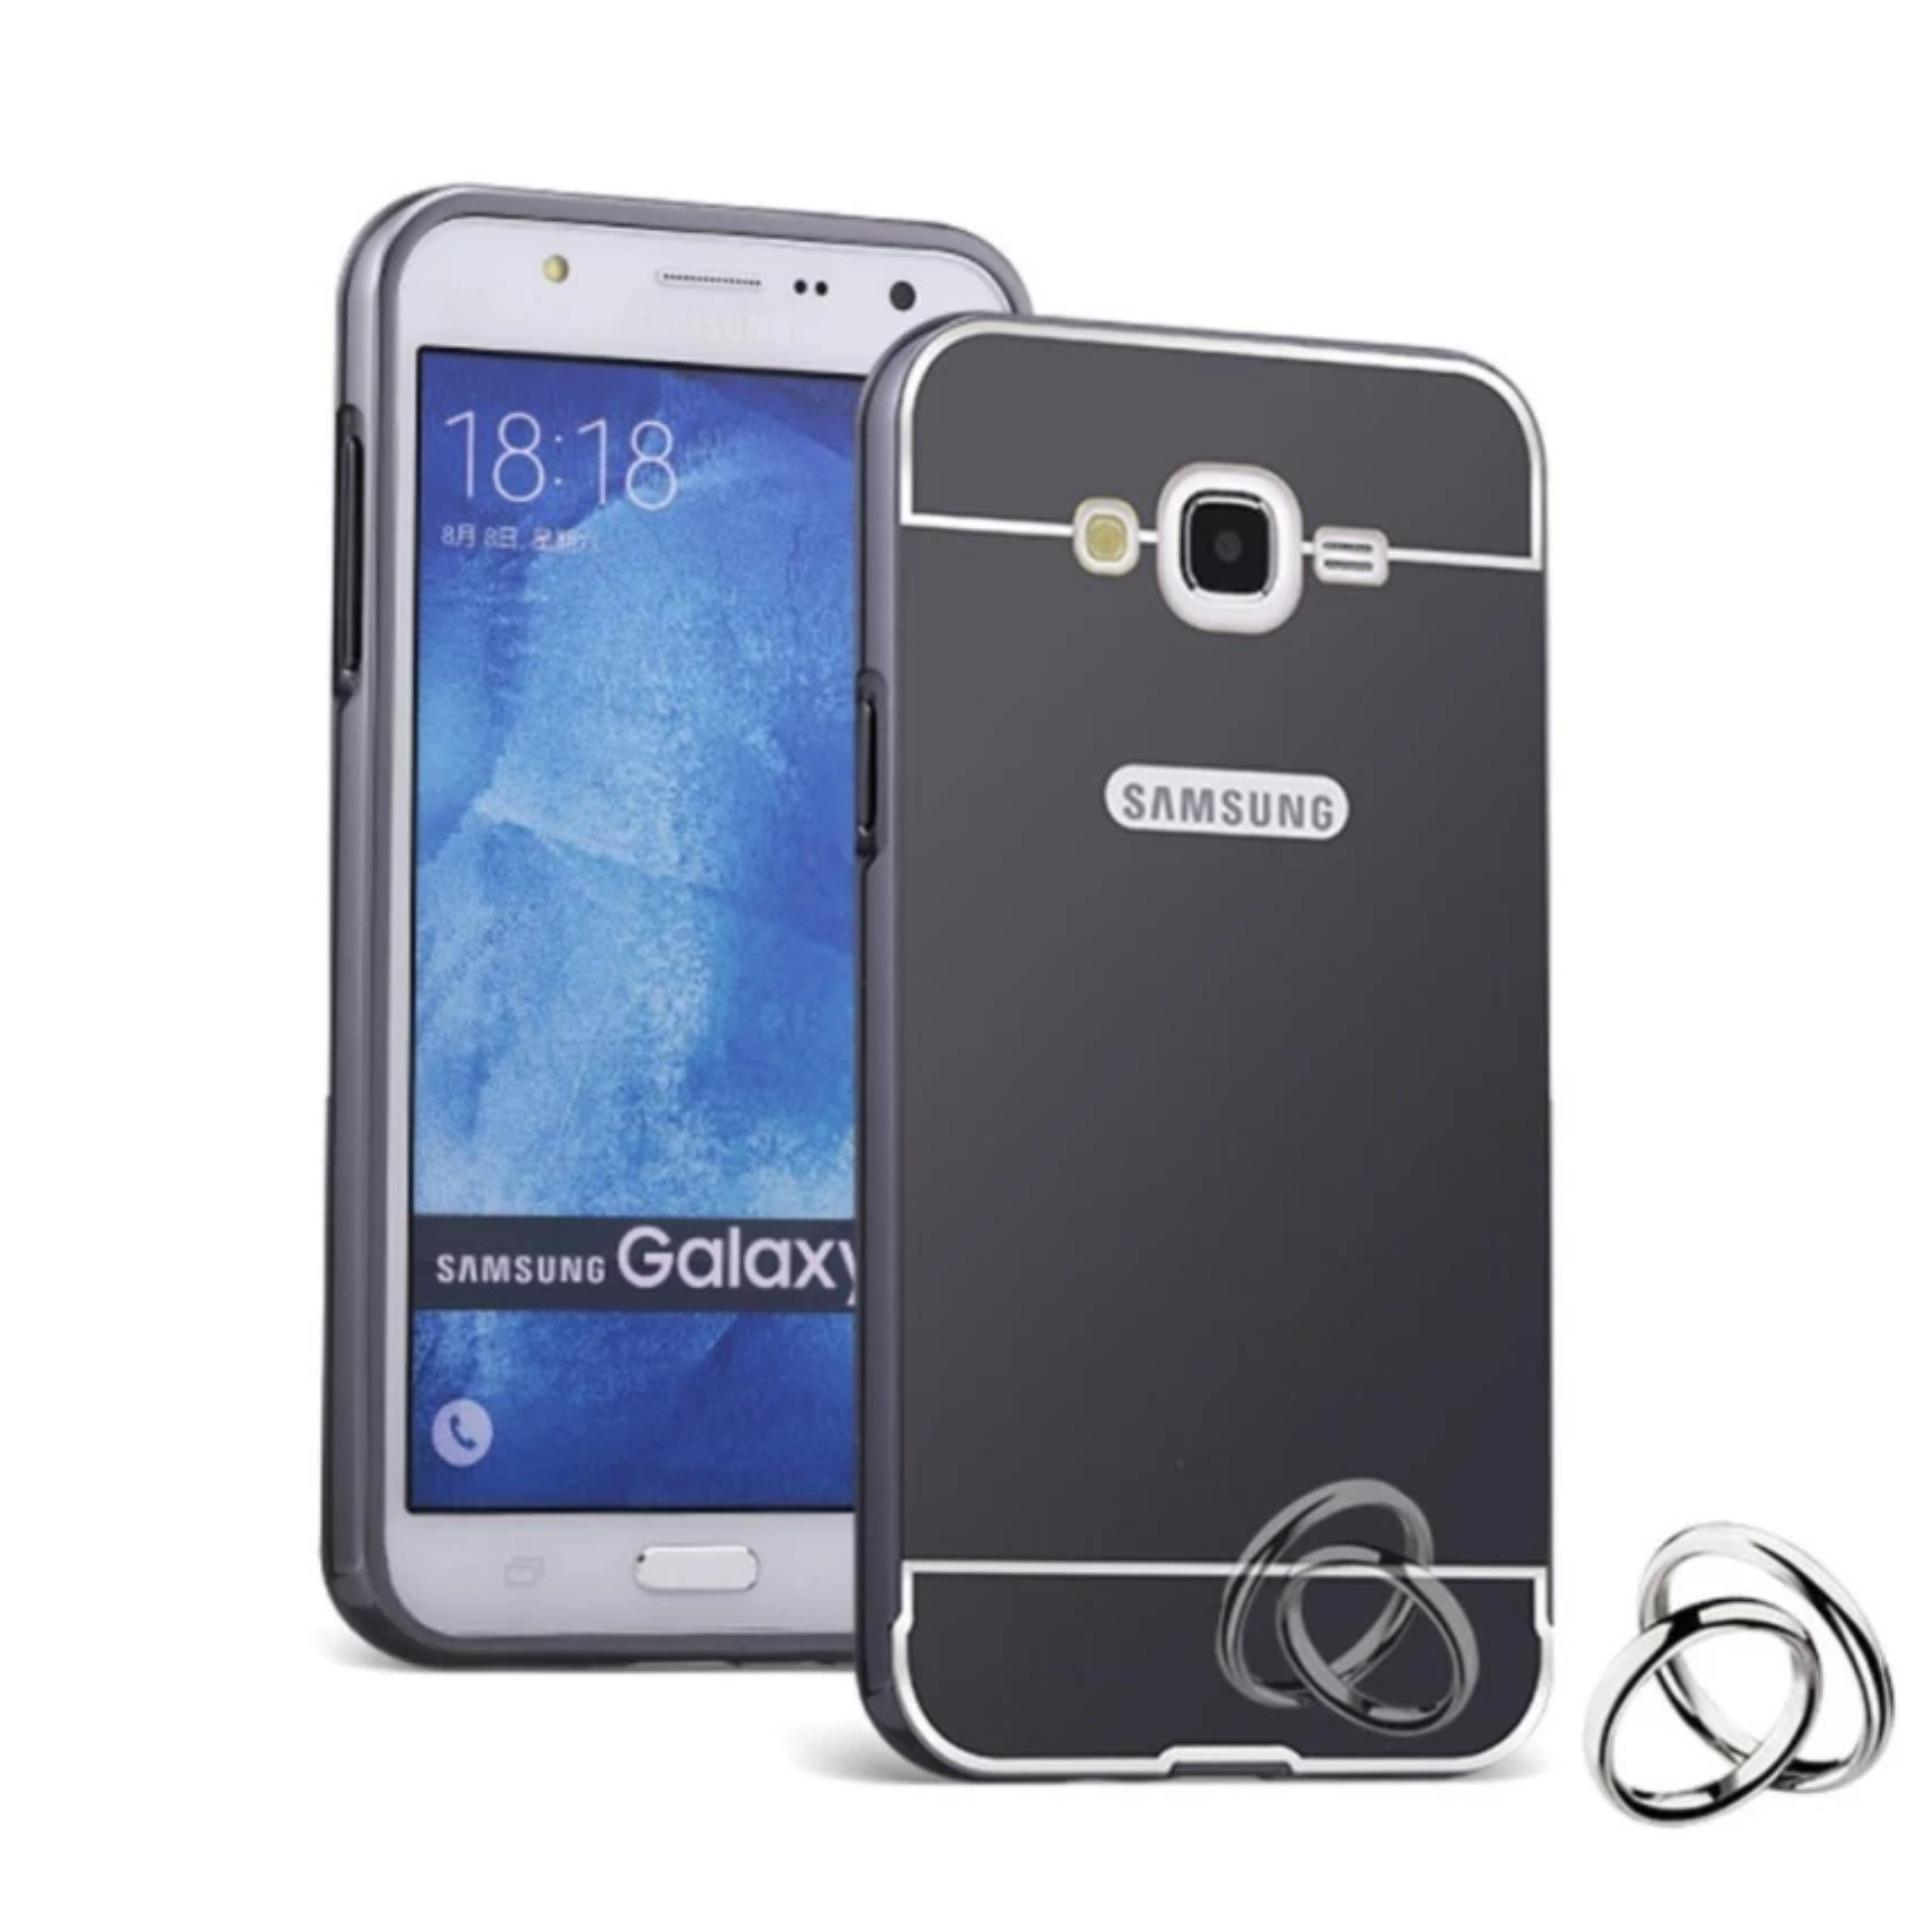 CASE SAMSUNG GALAXY V G313 ULTRATHIN AIRCASE HITAM CLEAR GRATIS TEMPERED GLASS ✓. Home;